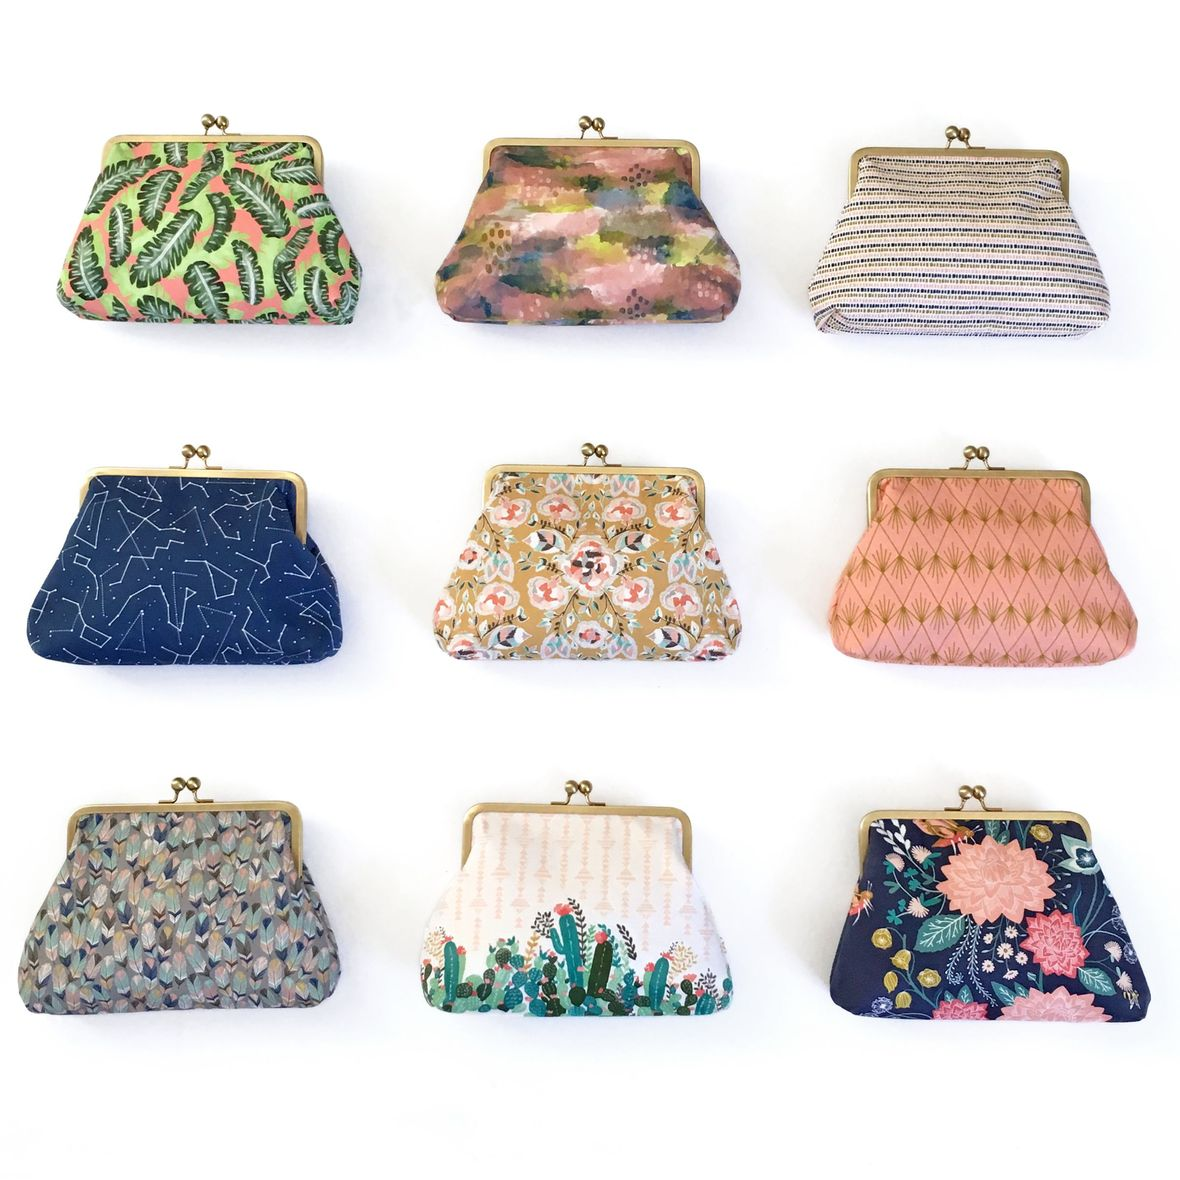 Canvas Purses Lg cropped - JPG